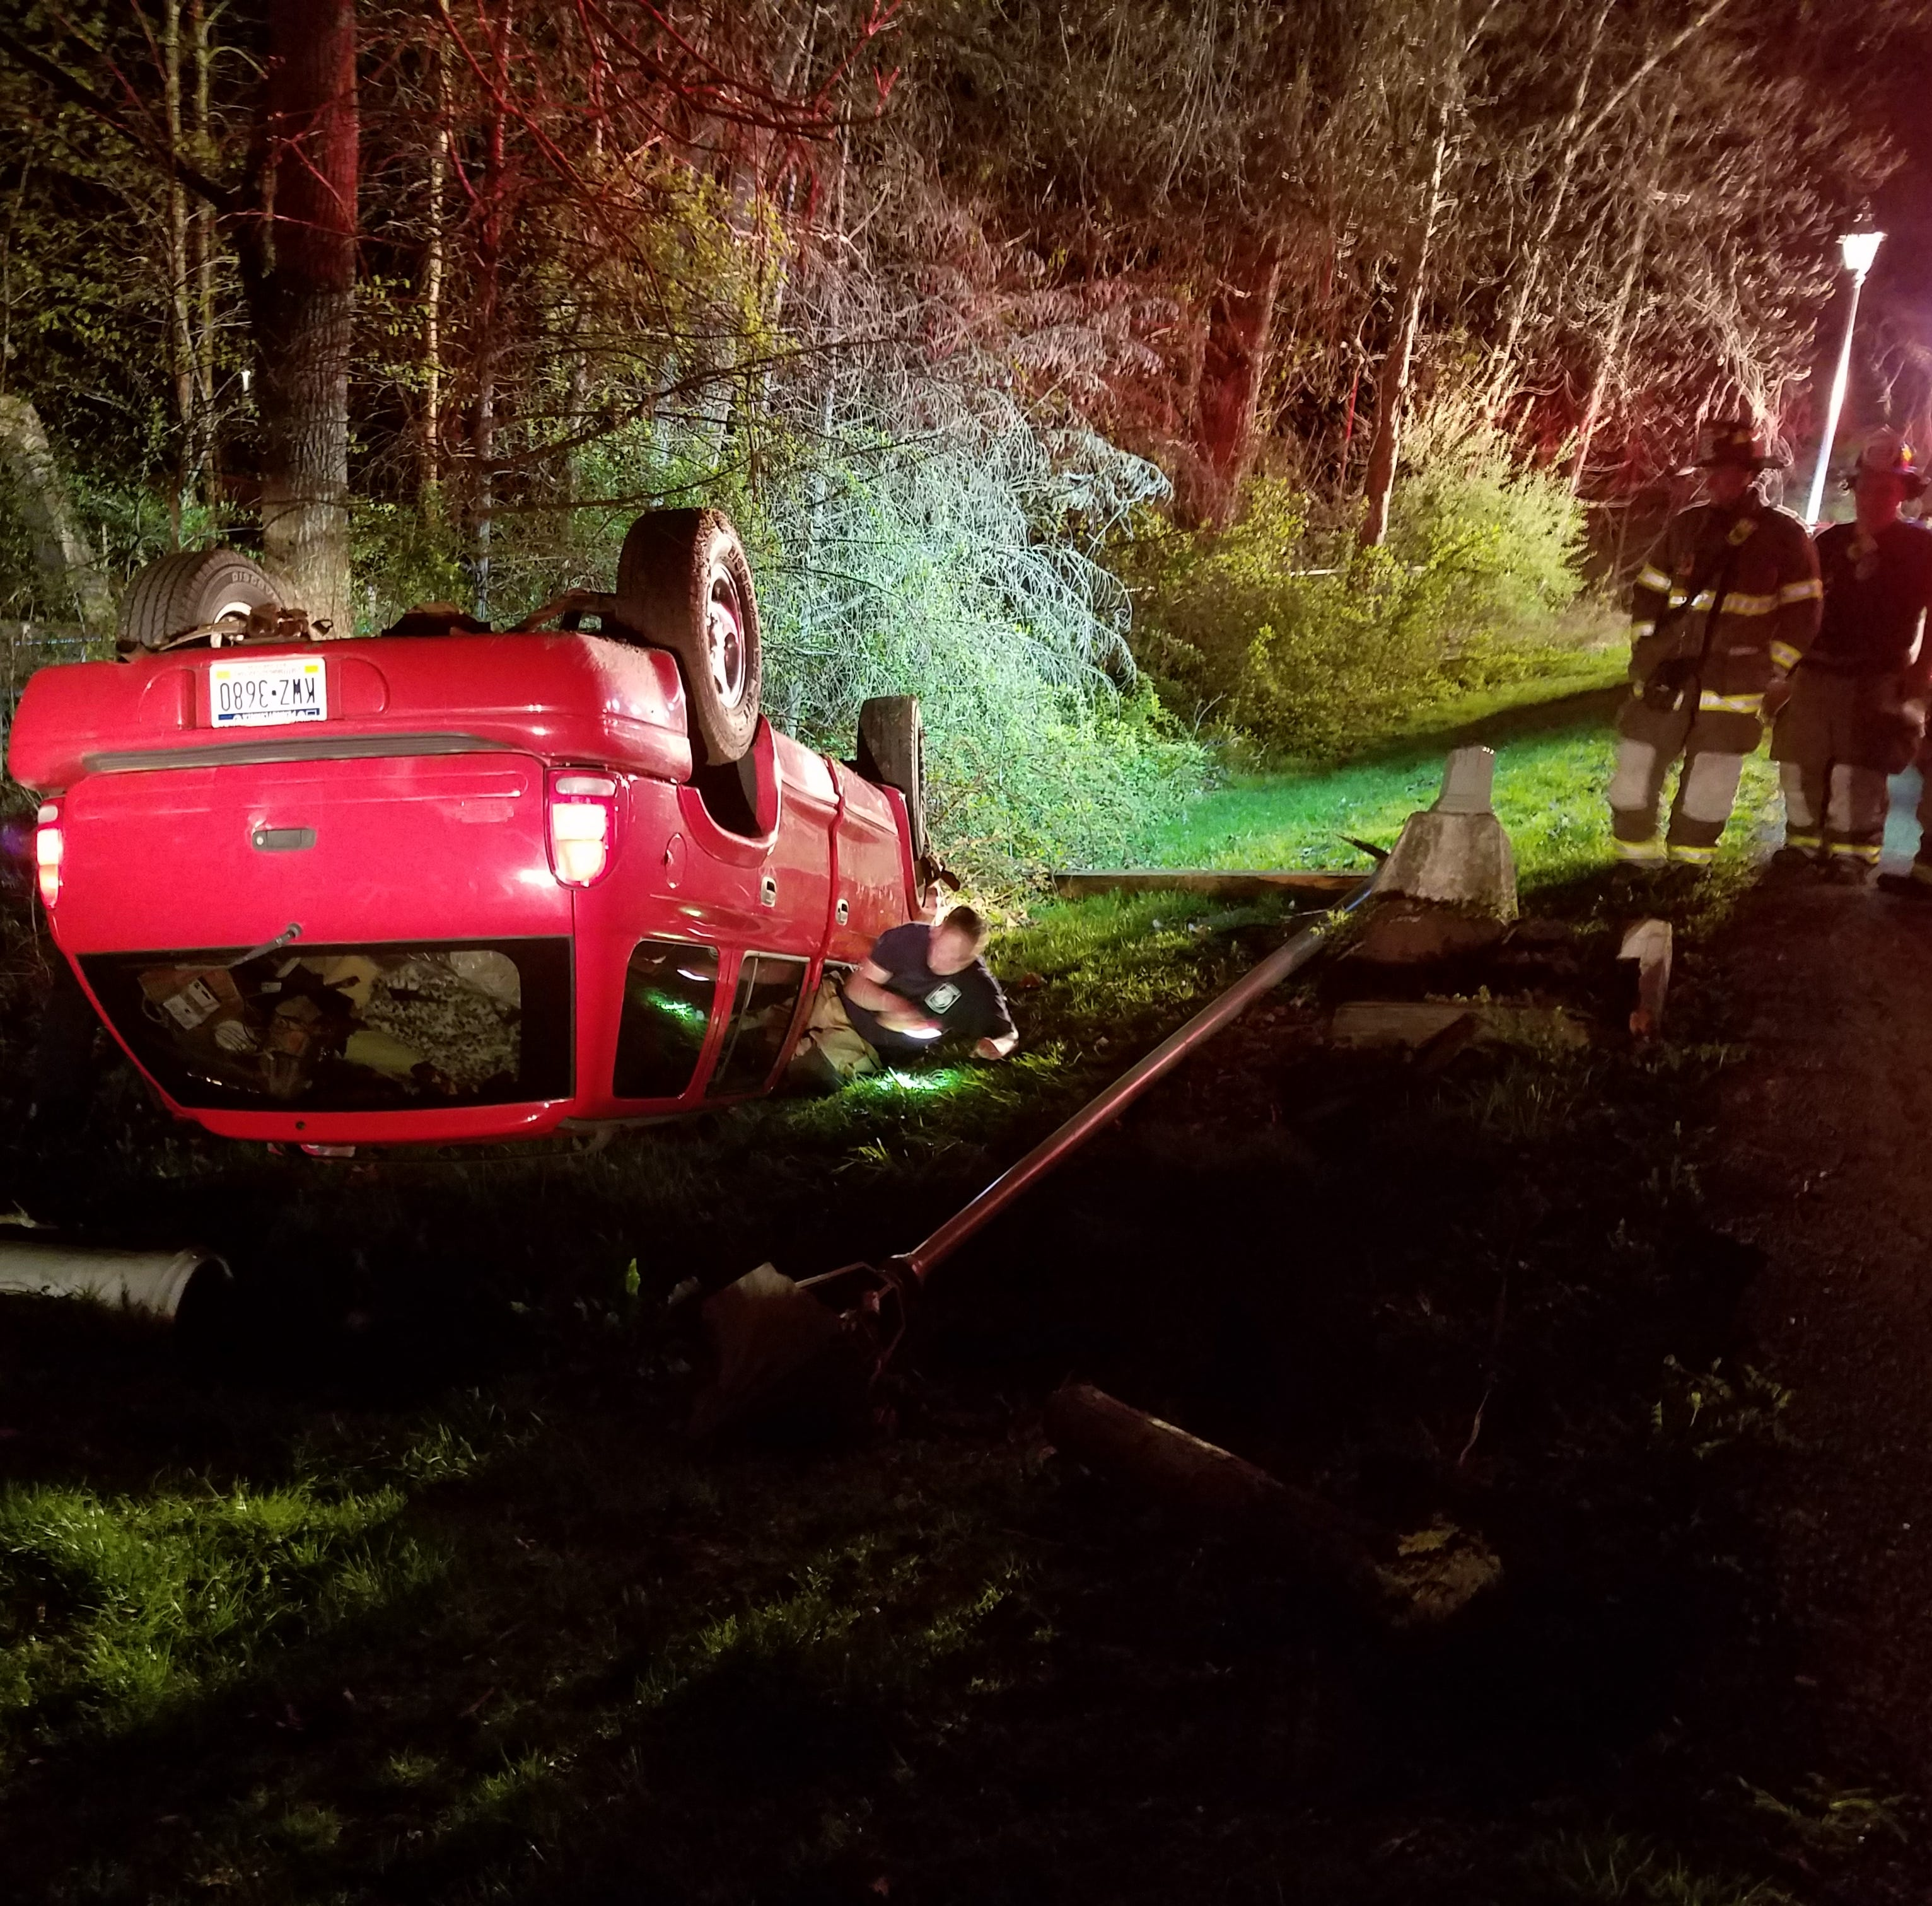 Driver flees after car overturns, Cumberland Twp. Police investigate